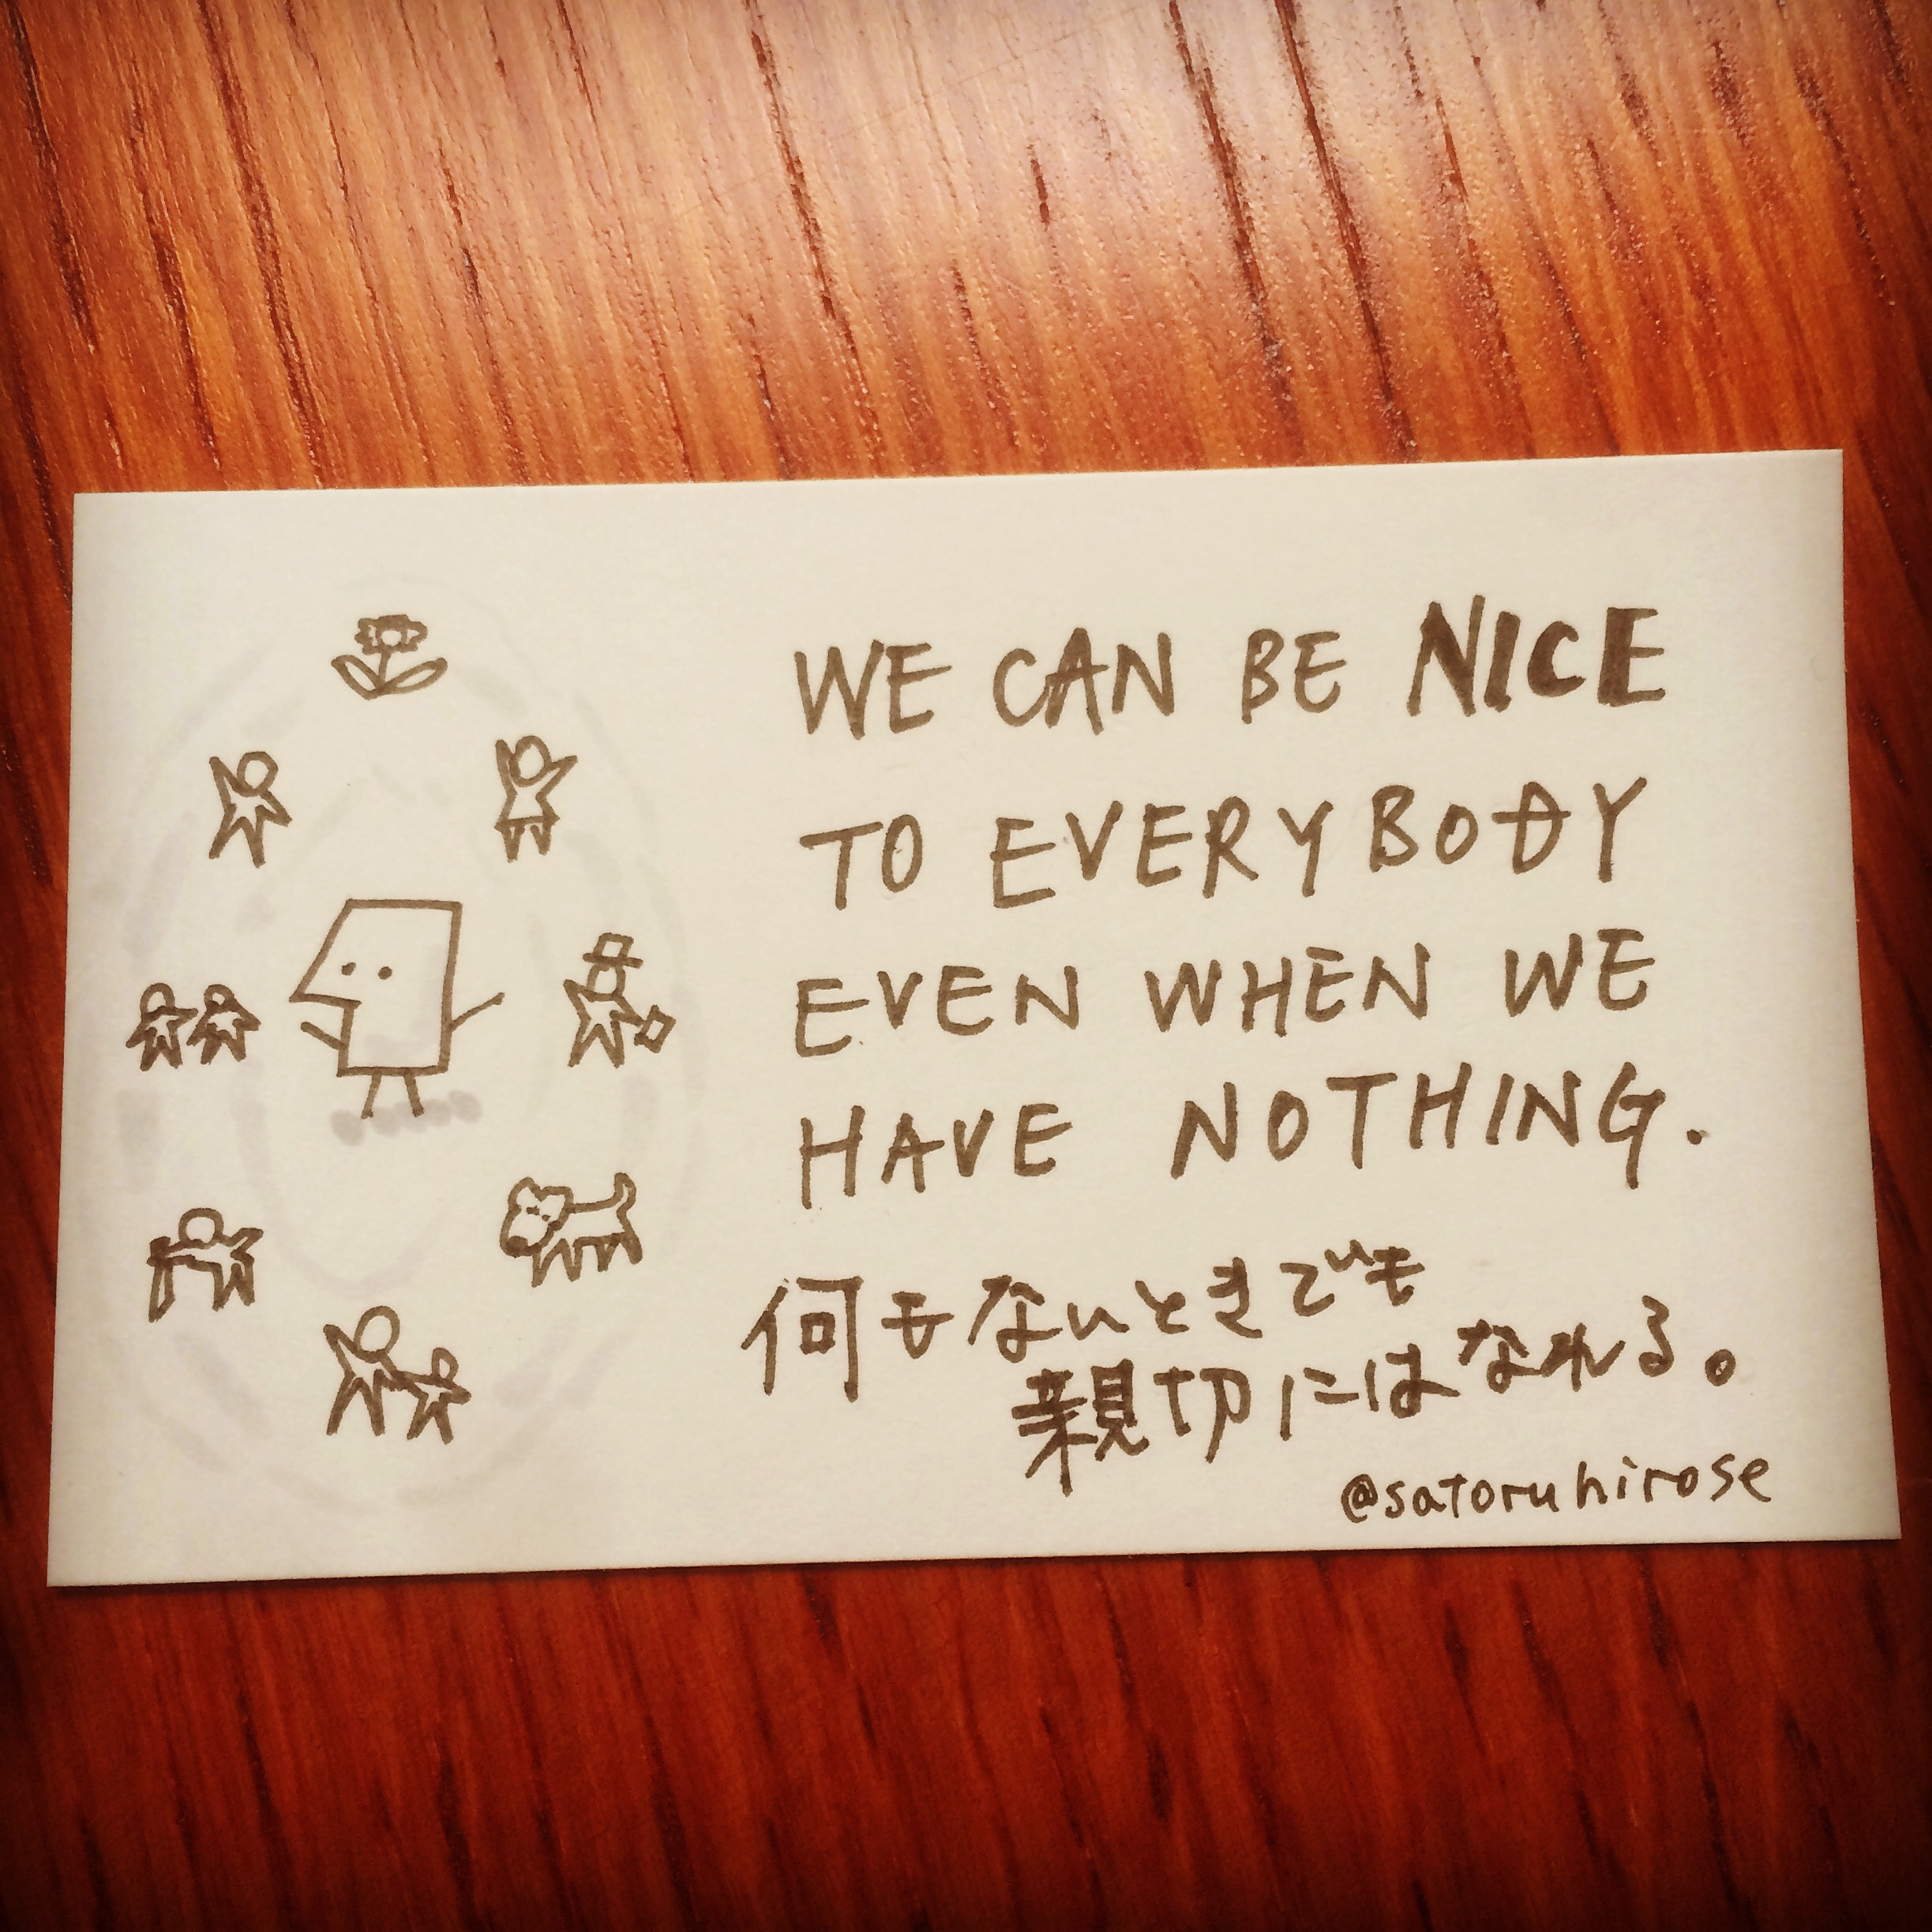 We can be nice to everybody even when we have nothing.